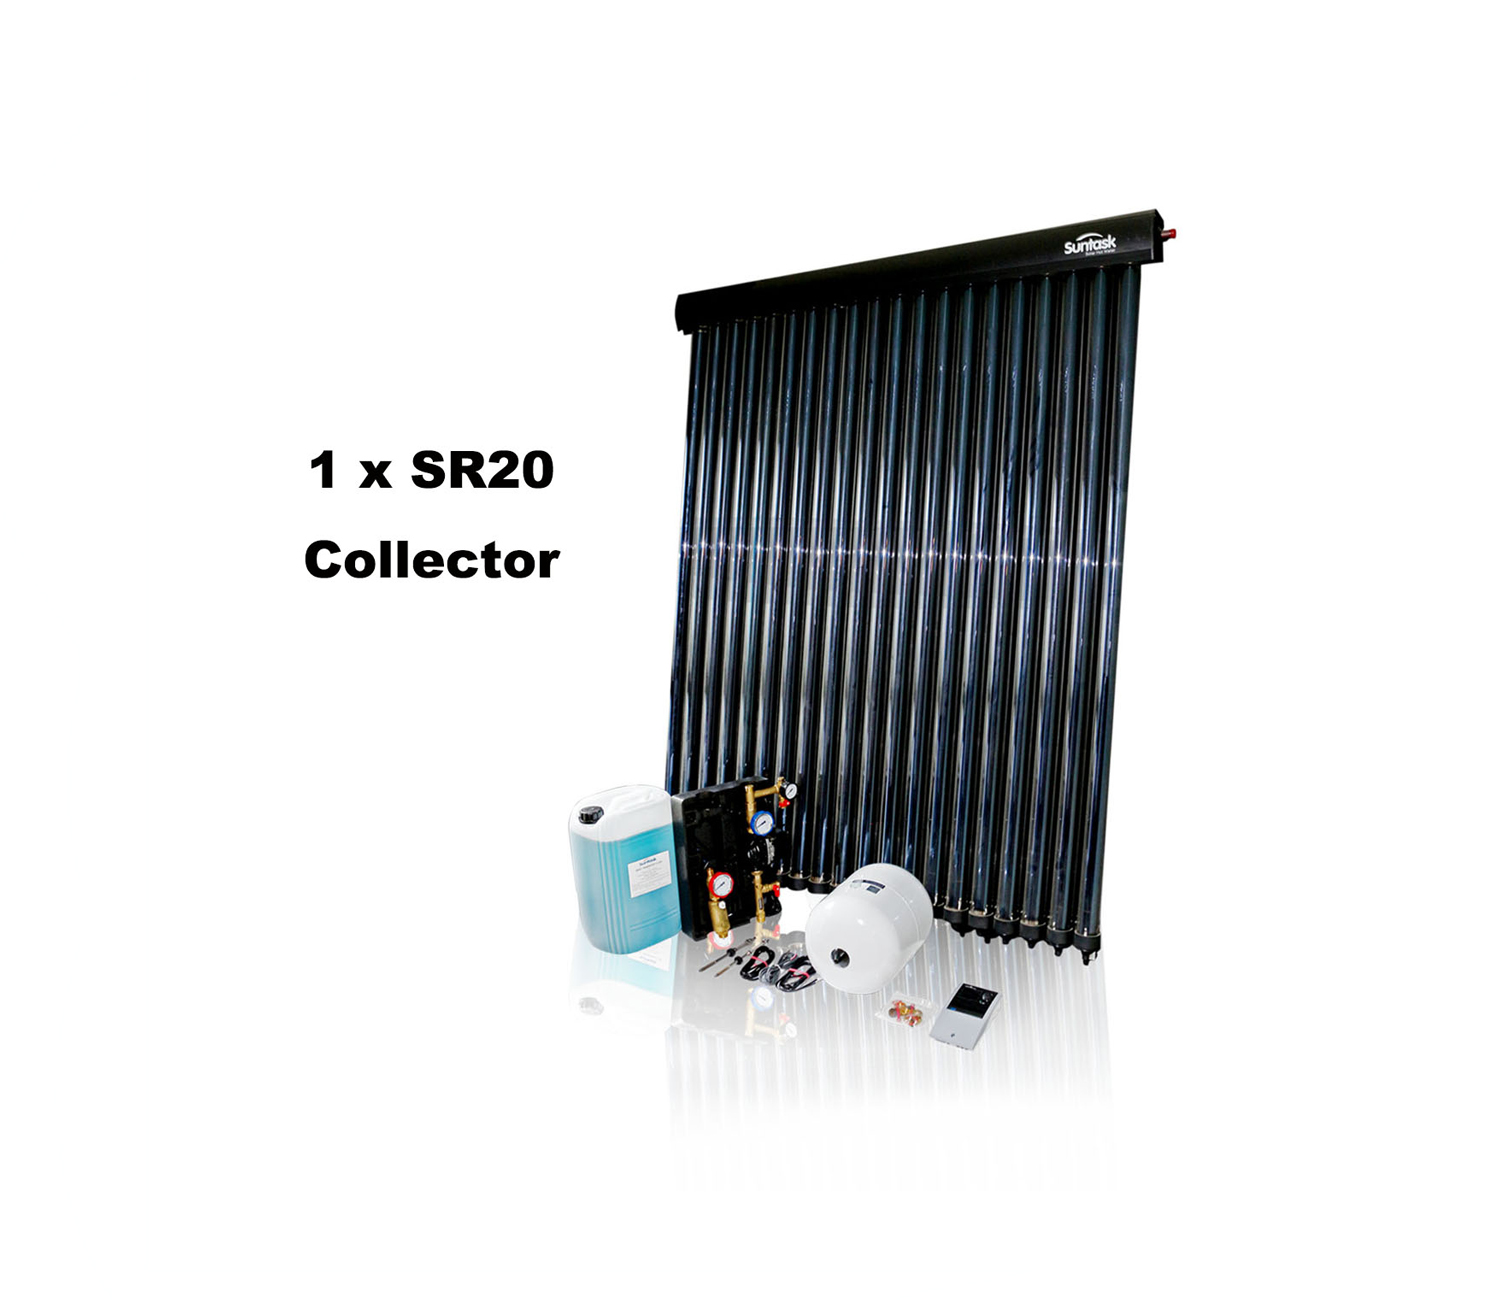 Suntask full Solar Thermal Kits excluding Cylinders 20 Tube System (1 x SR20 Collector)